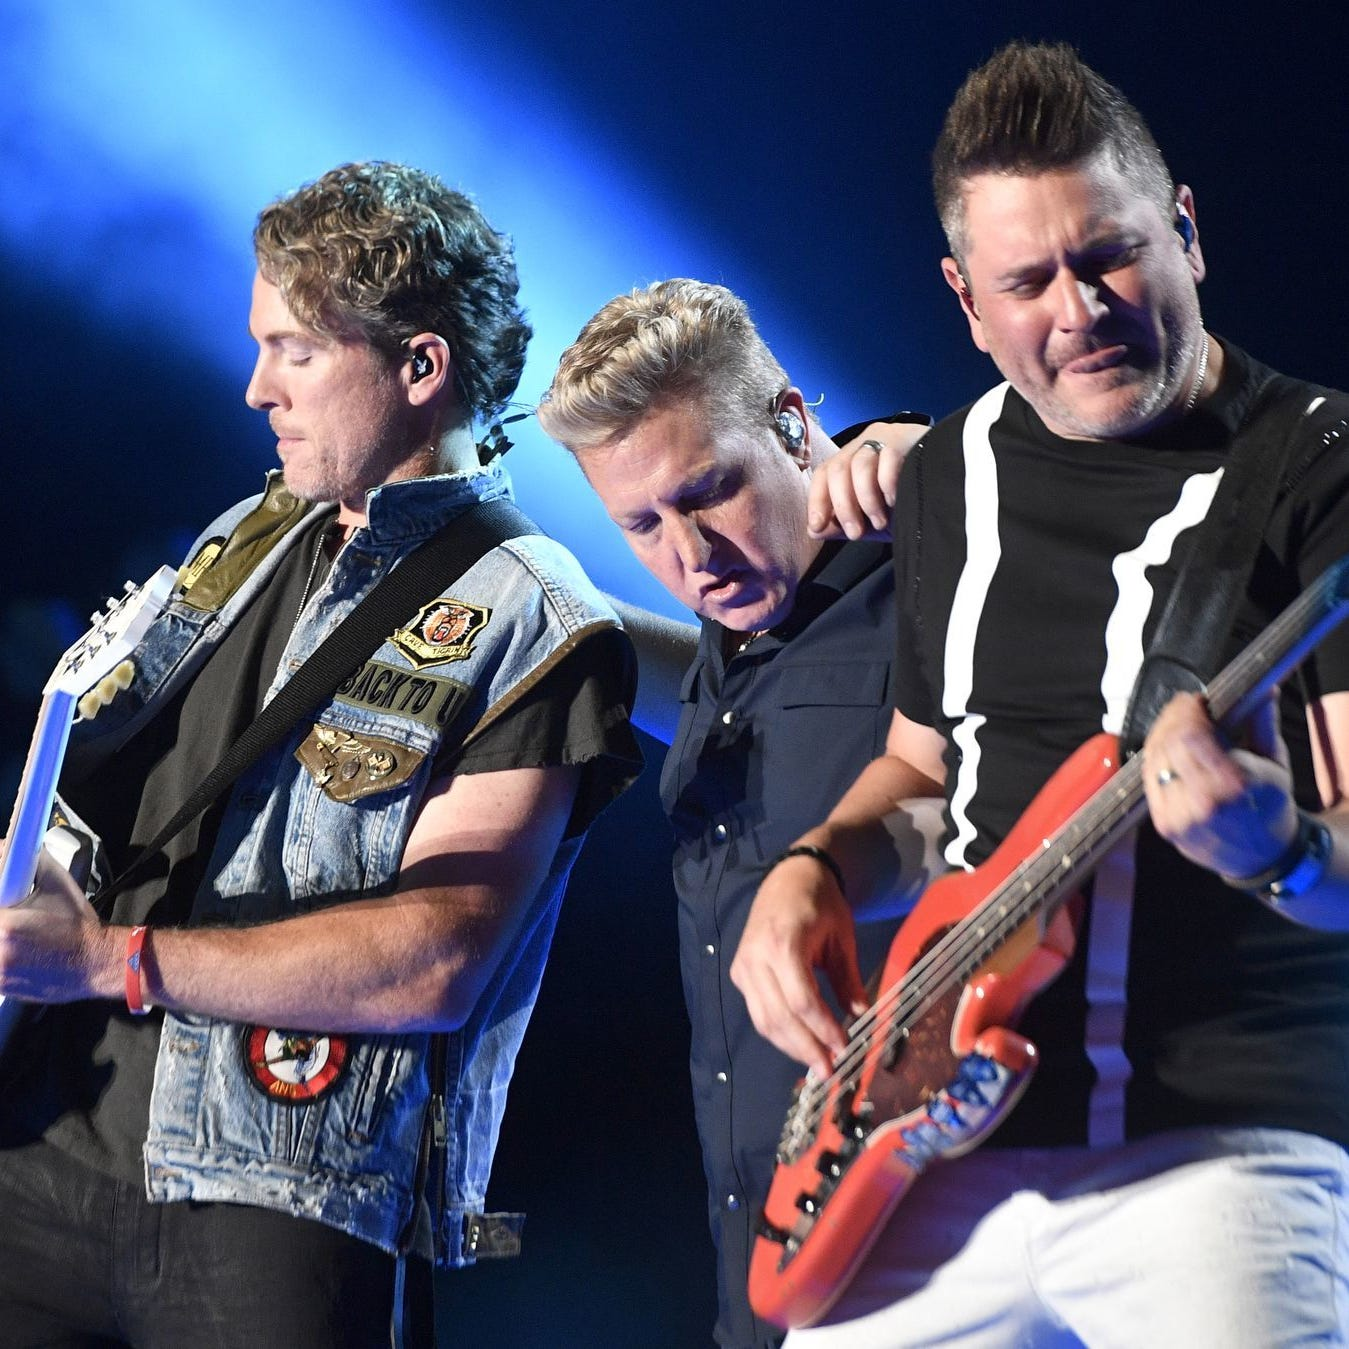 Rascal Flatts 'safety concern' at Ruoff: Authorities say investigation still under way